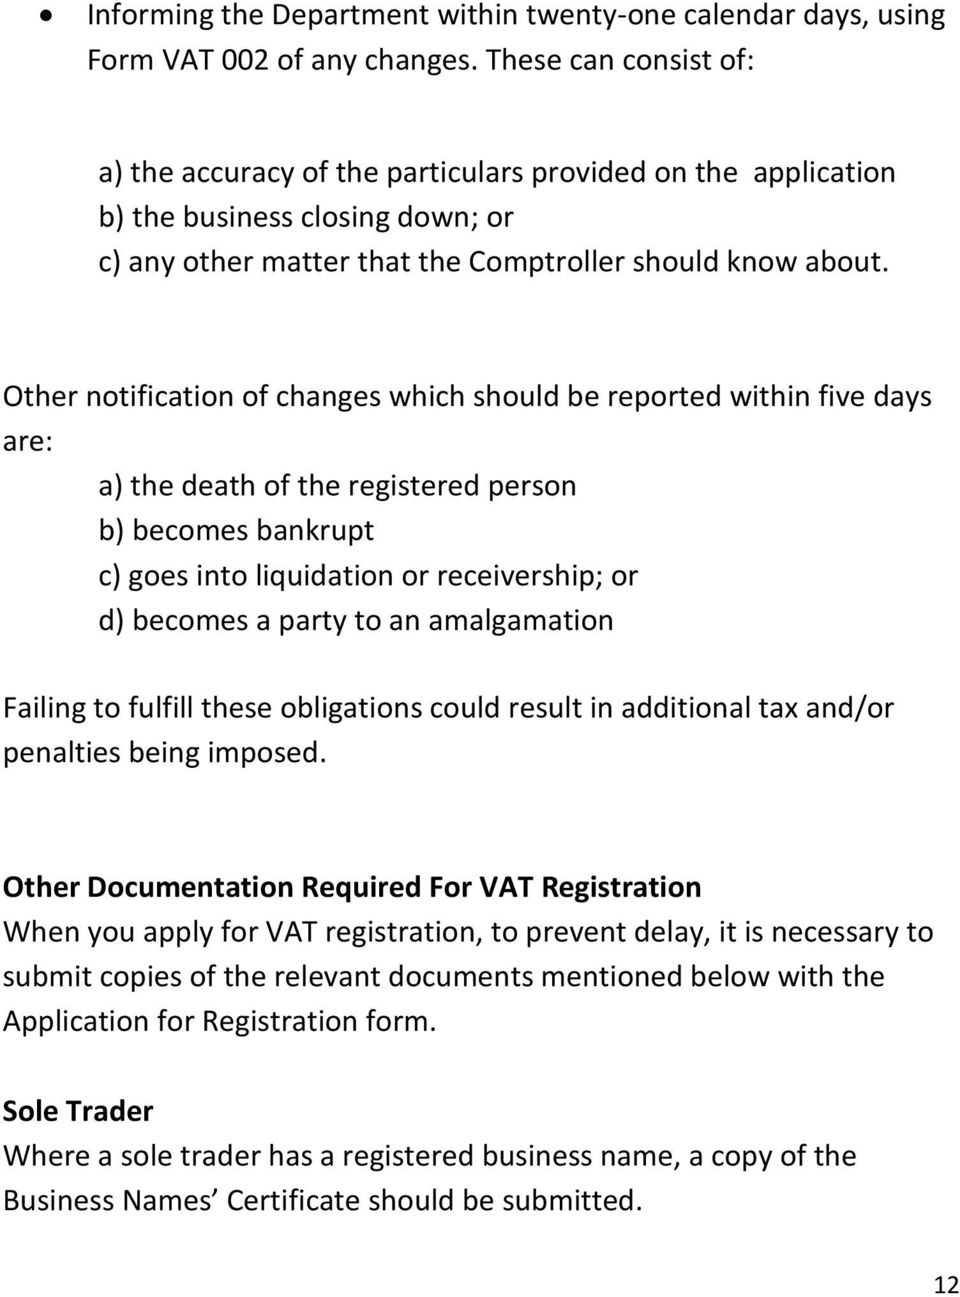 Other notification of changes which should be reported within five days are: a) the death of the registered person b) becomes bankrupt c) goes into liquidation or receivership; or d) becomes a party